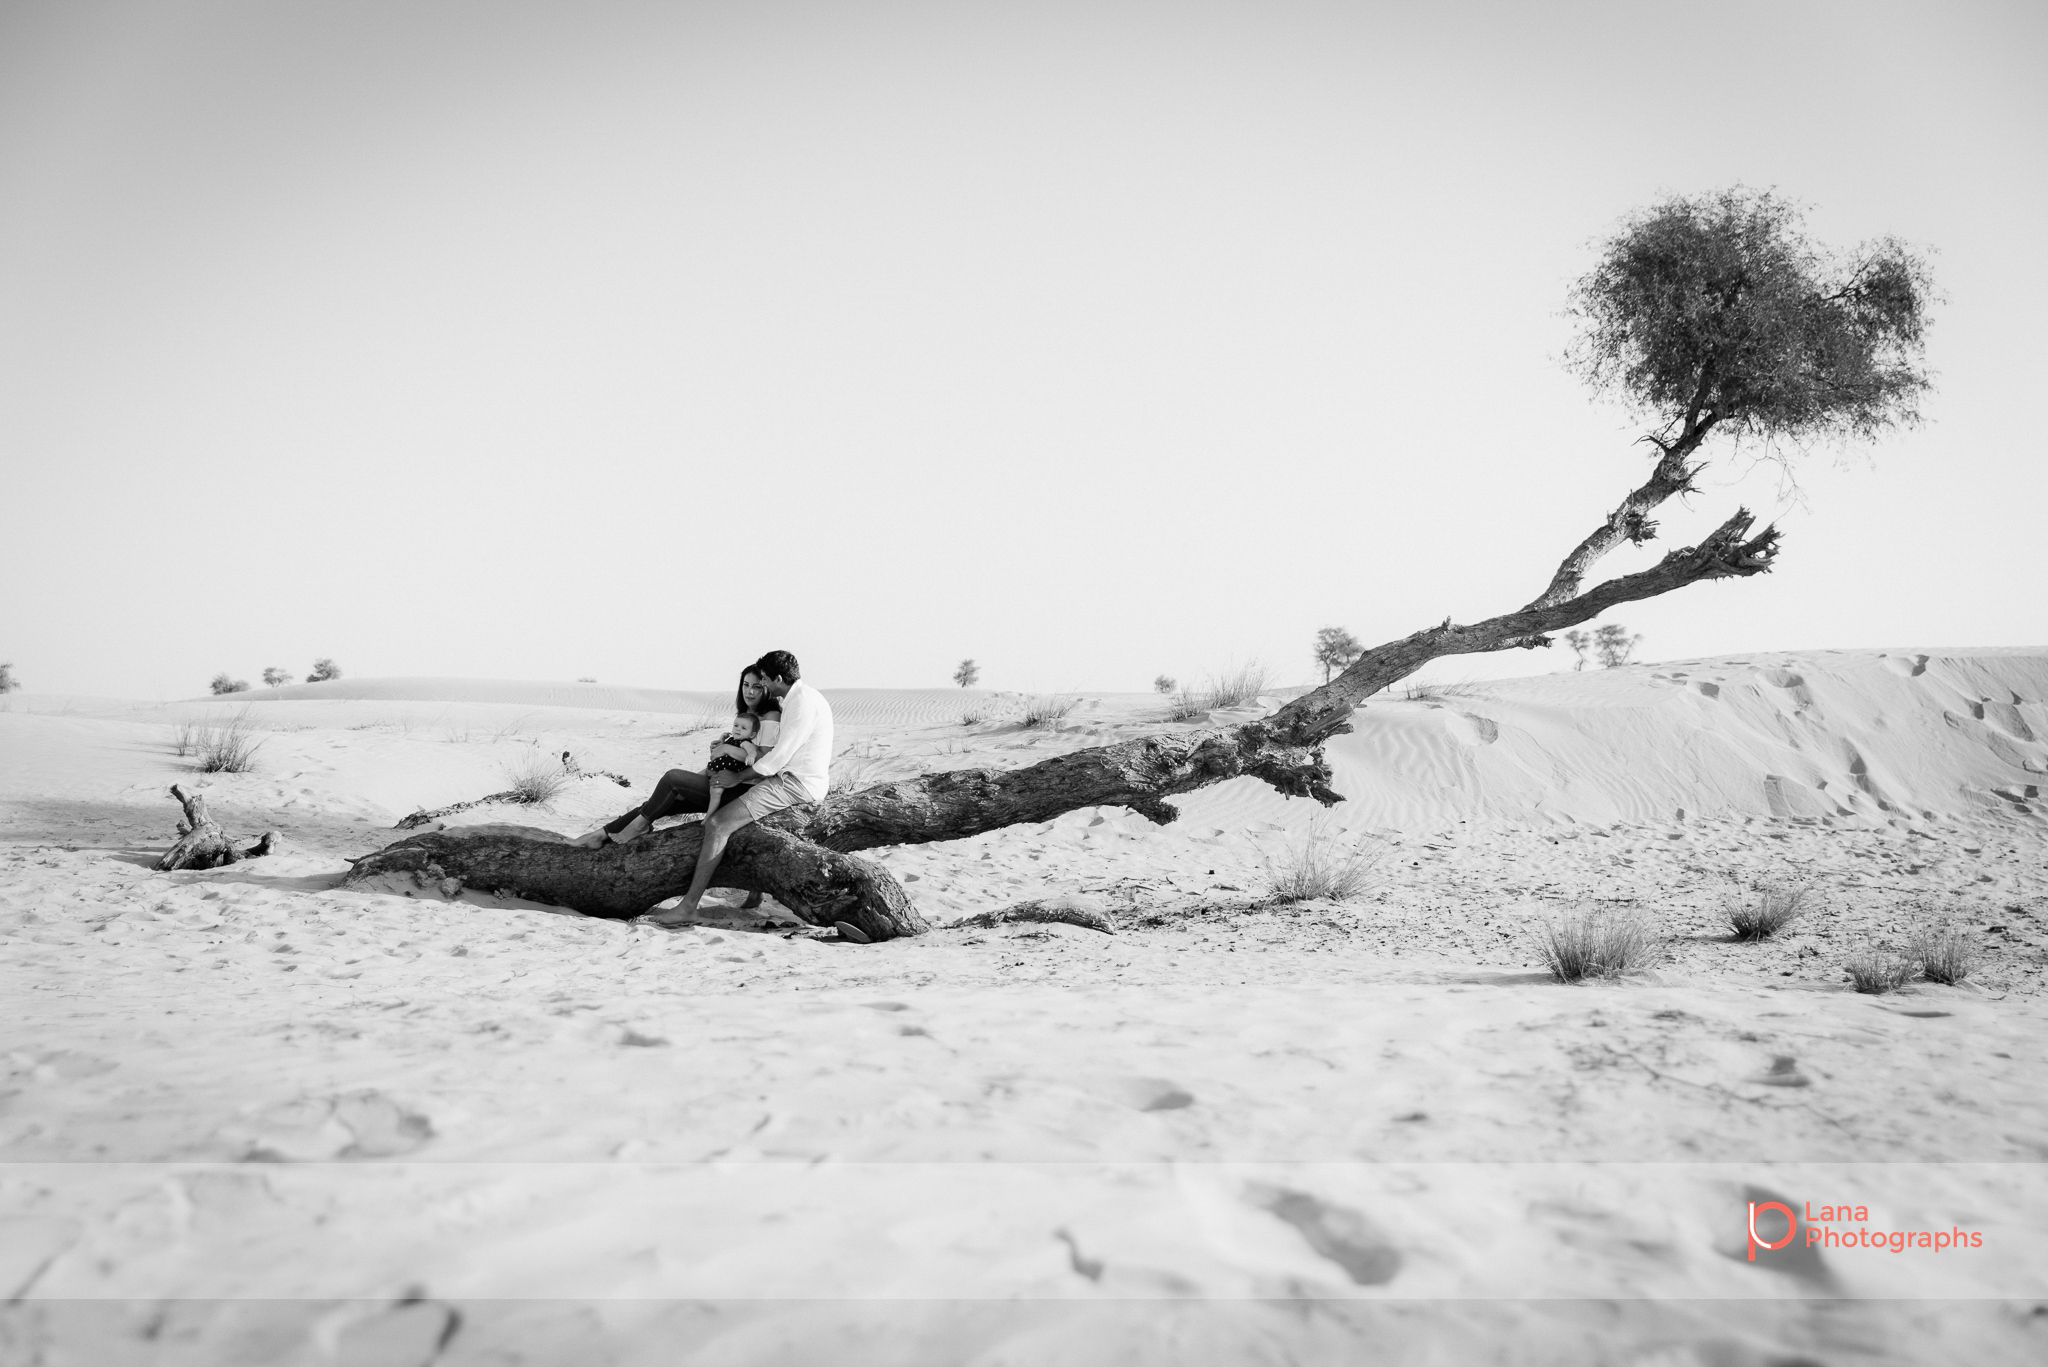 Lana Photographs Family Photographer Dubai Top Family Photographers family sitting on tree branch in desert